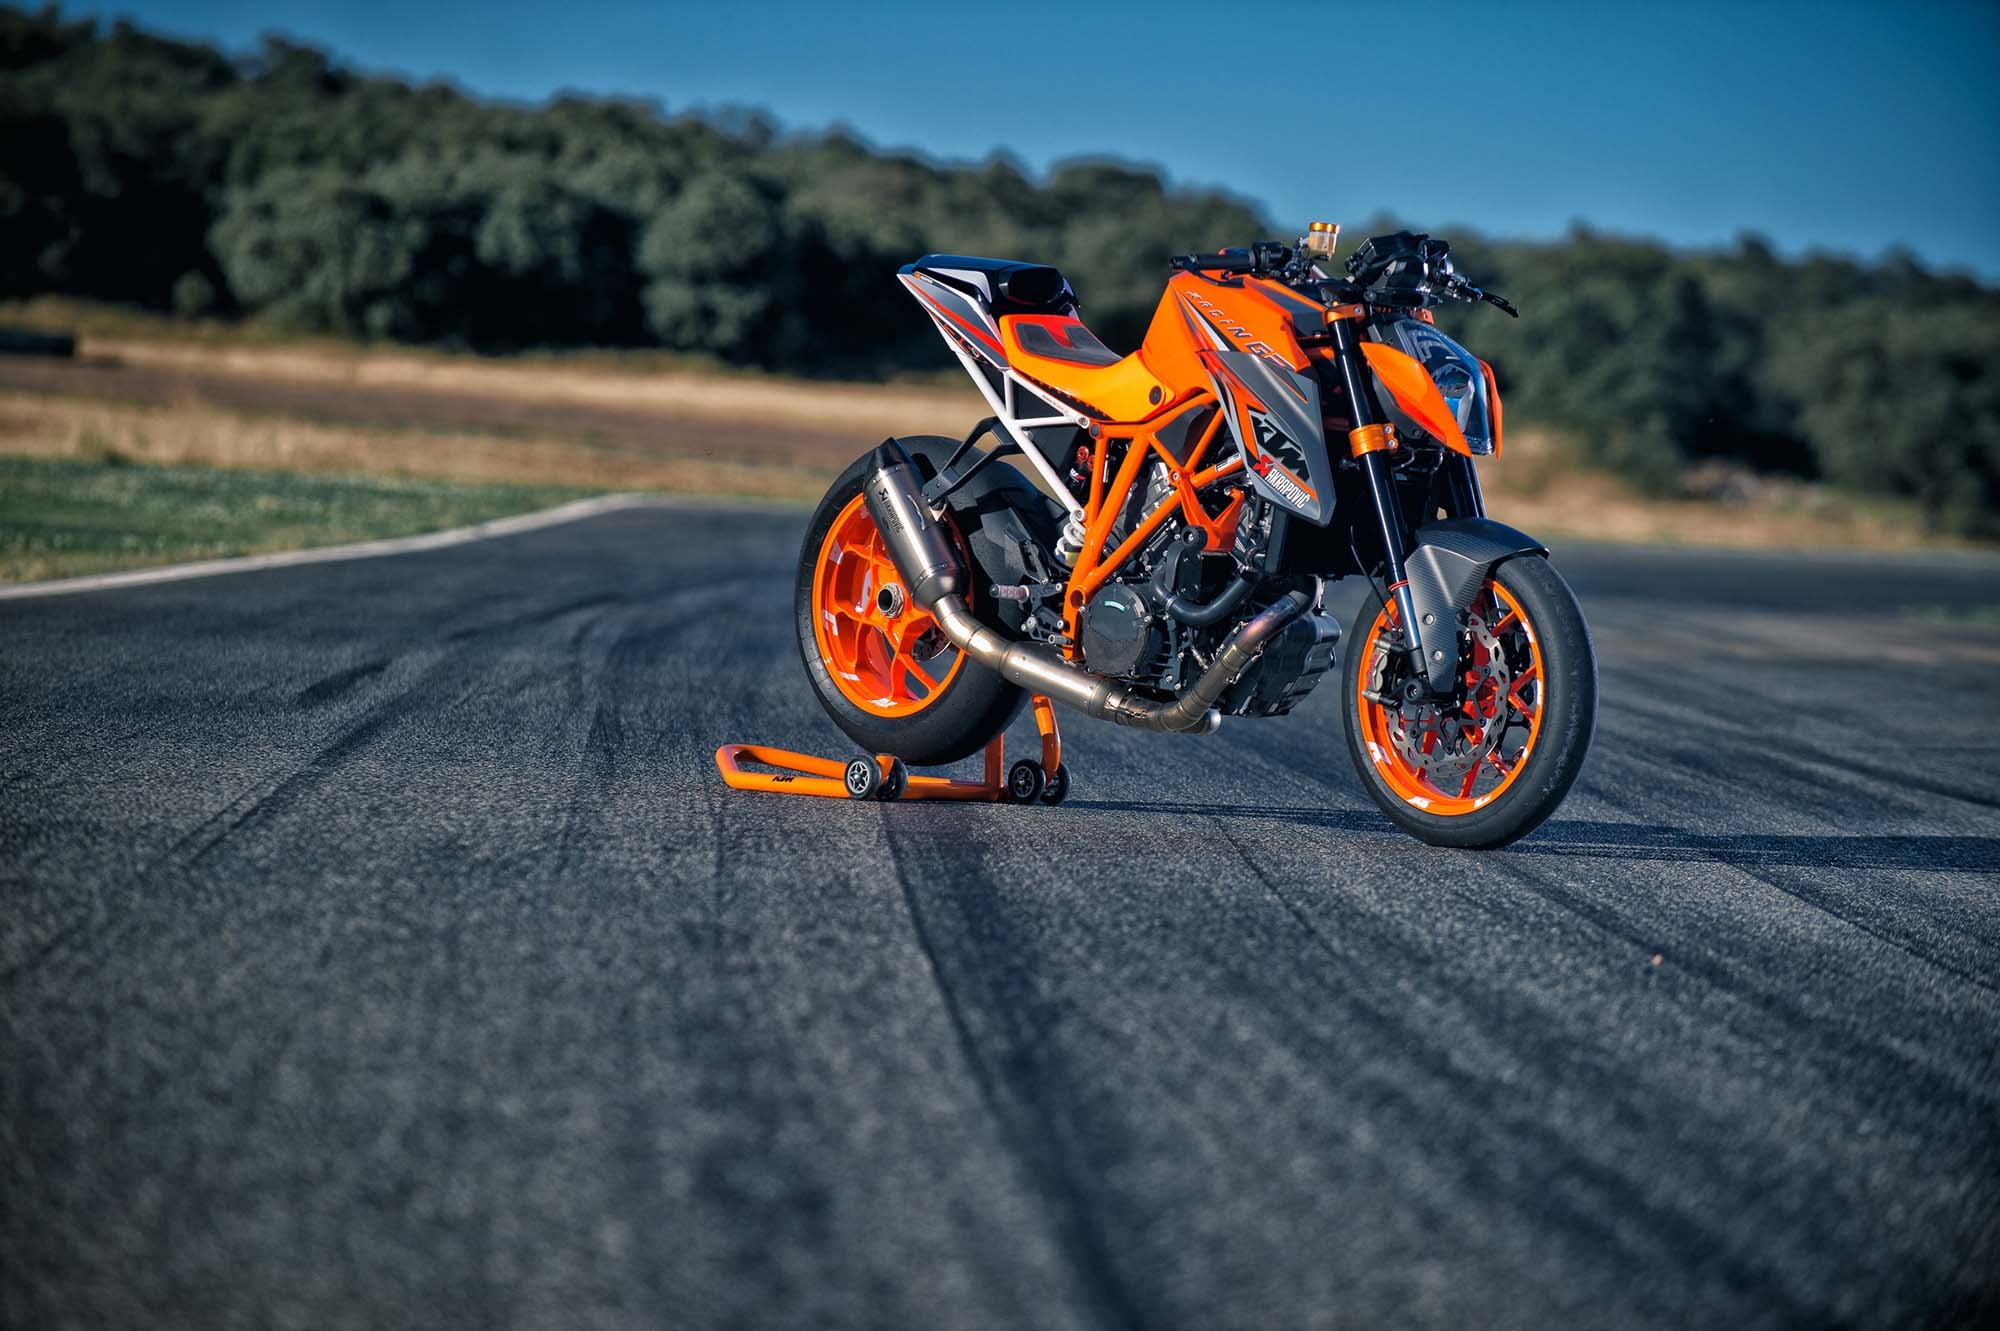 Res: 2000x1331, 2017 Ktm 1290 Super Duke R Wallpapers Background